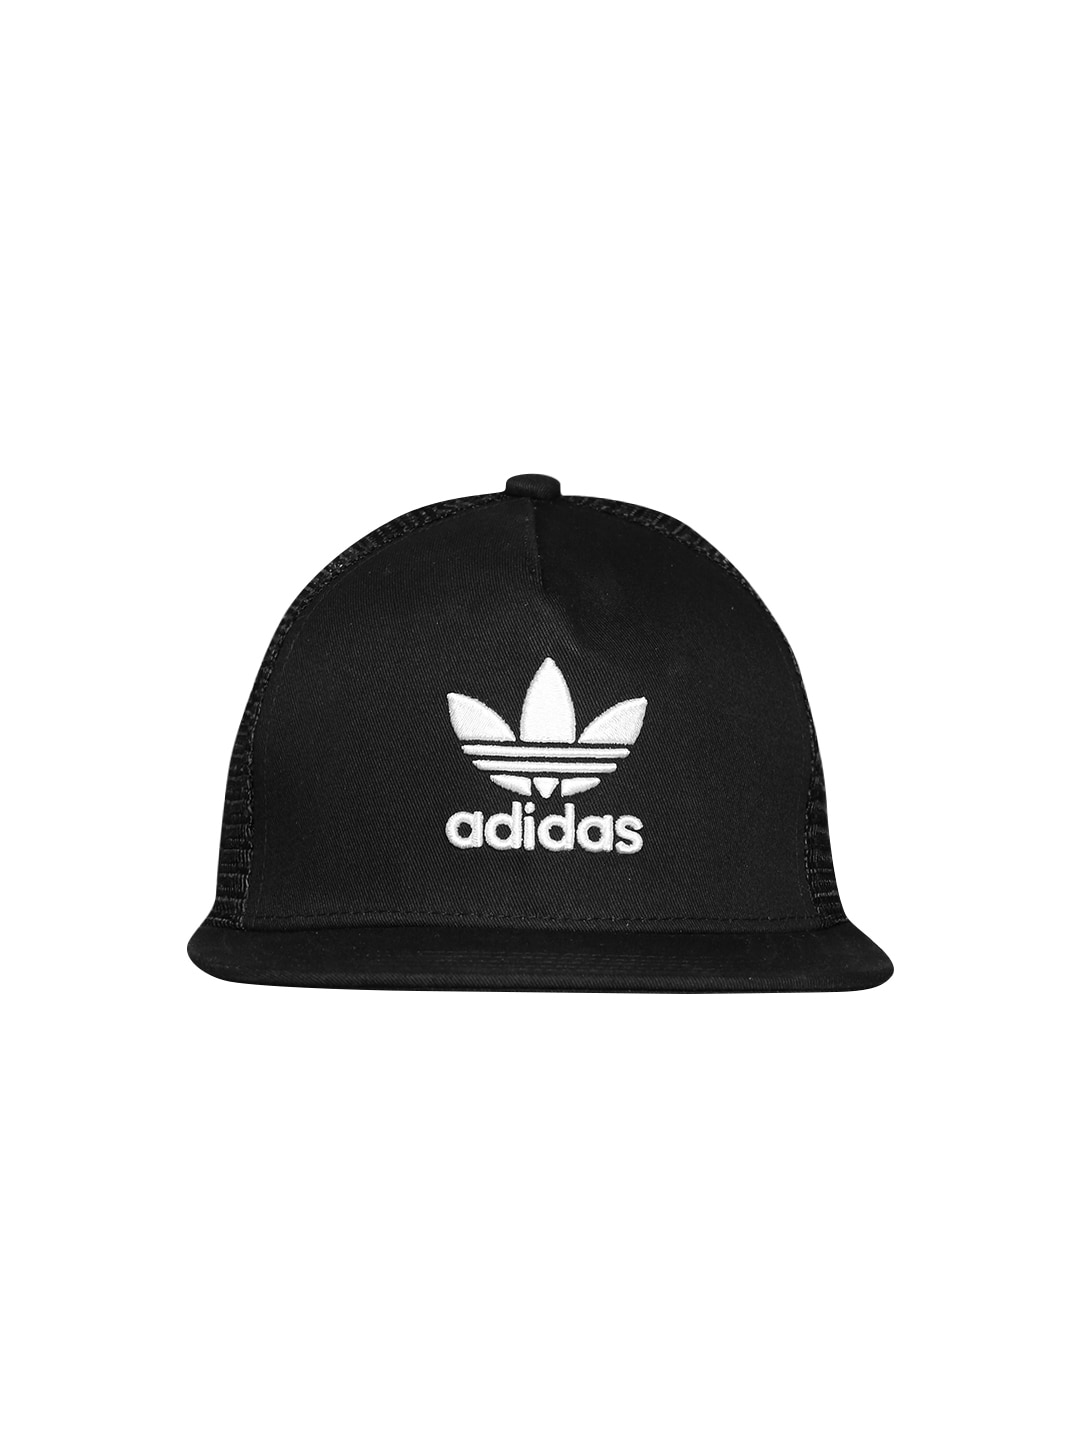 Adidas Originals Caps - Buy Adidas Originals Caps Online in India 49f7c86713